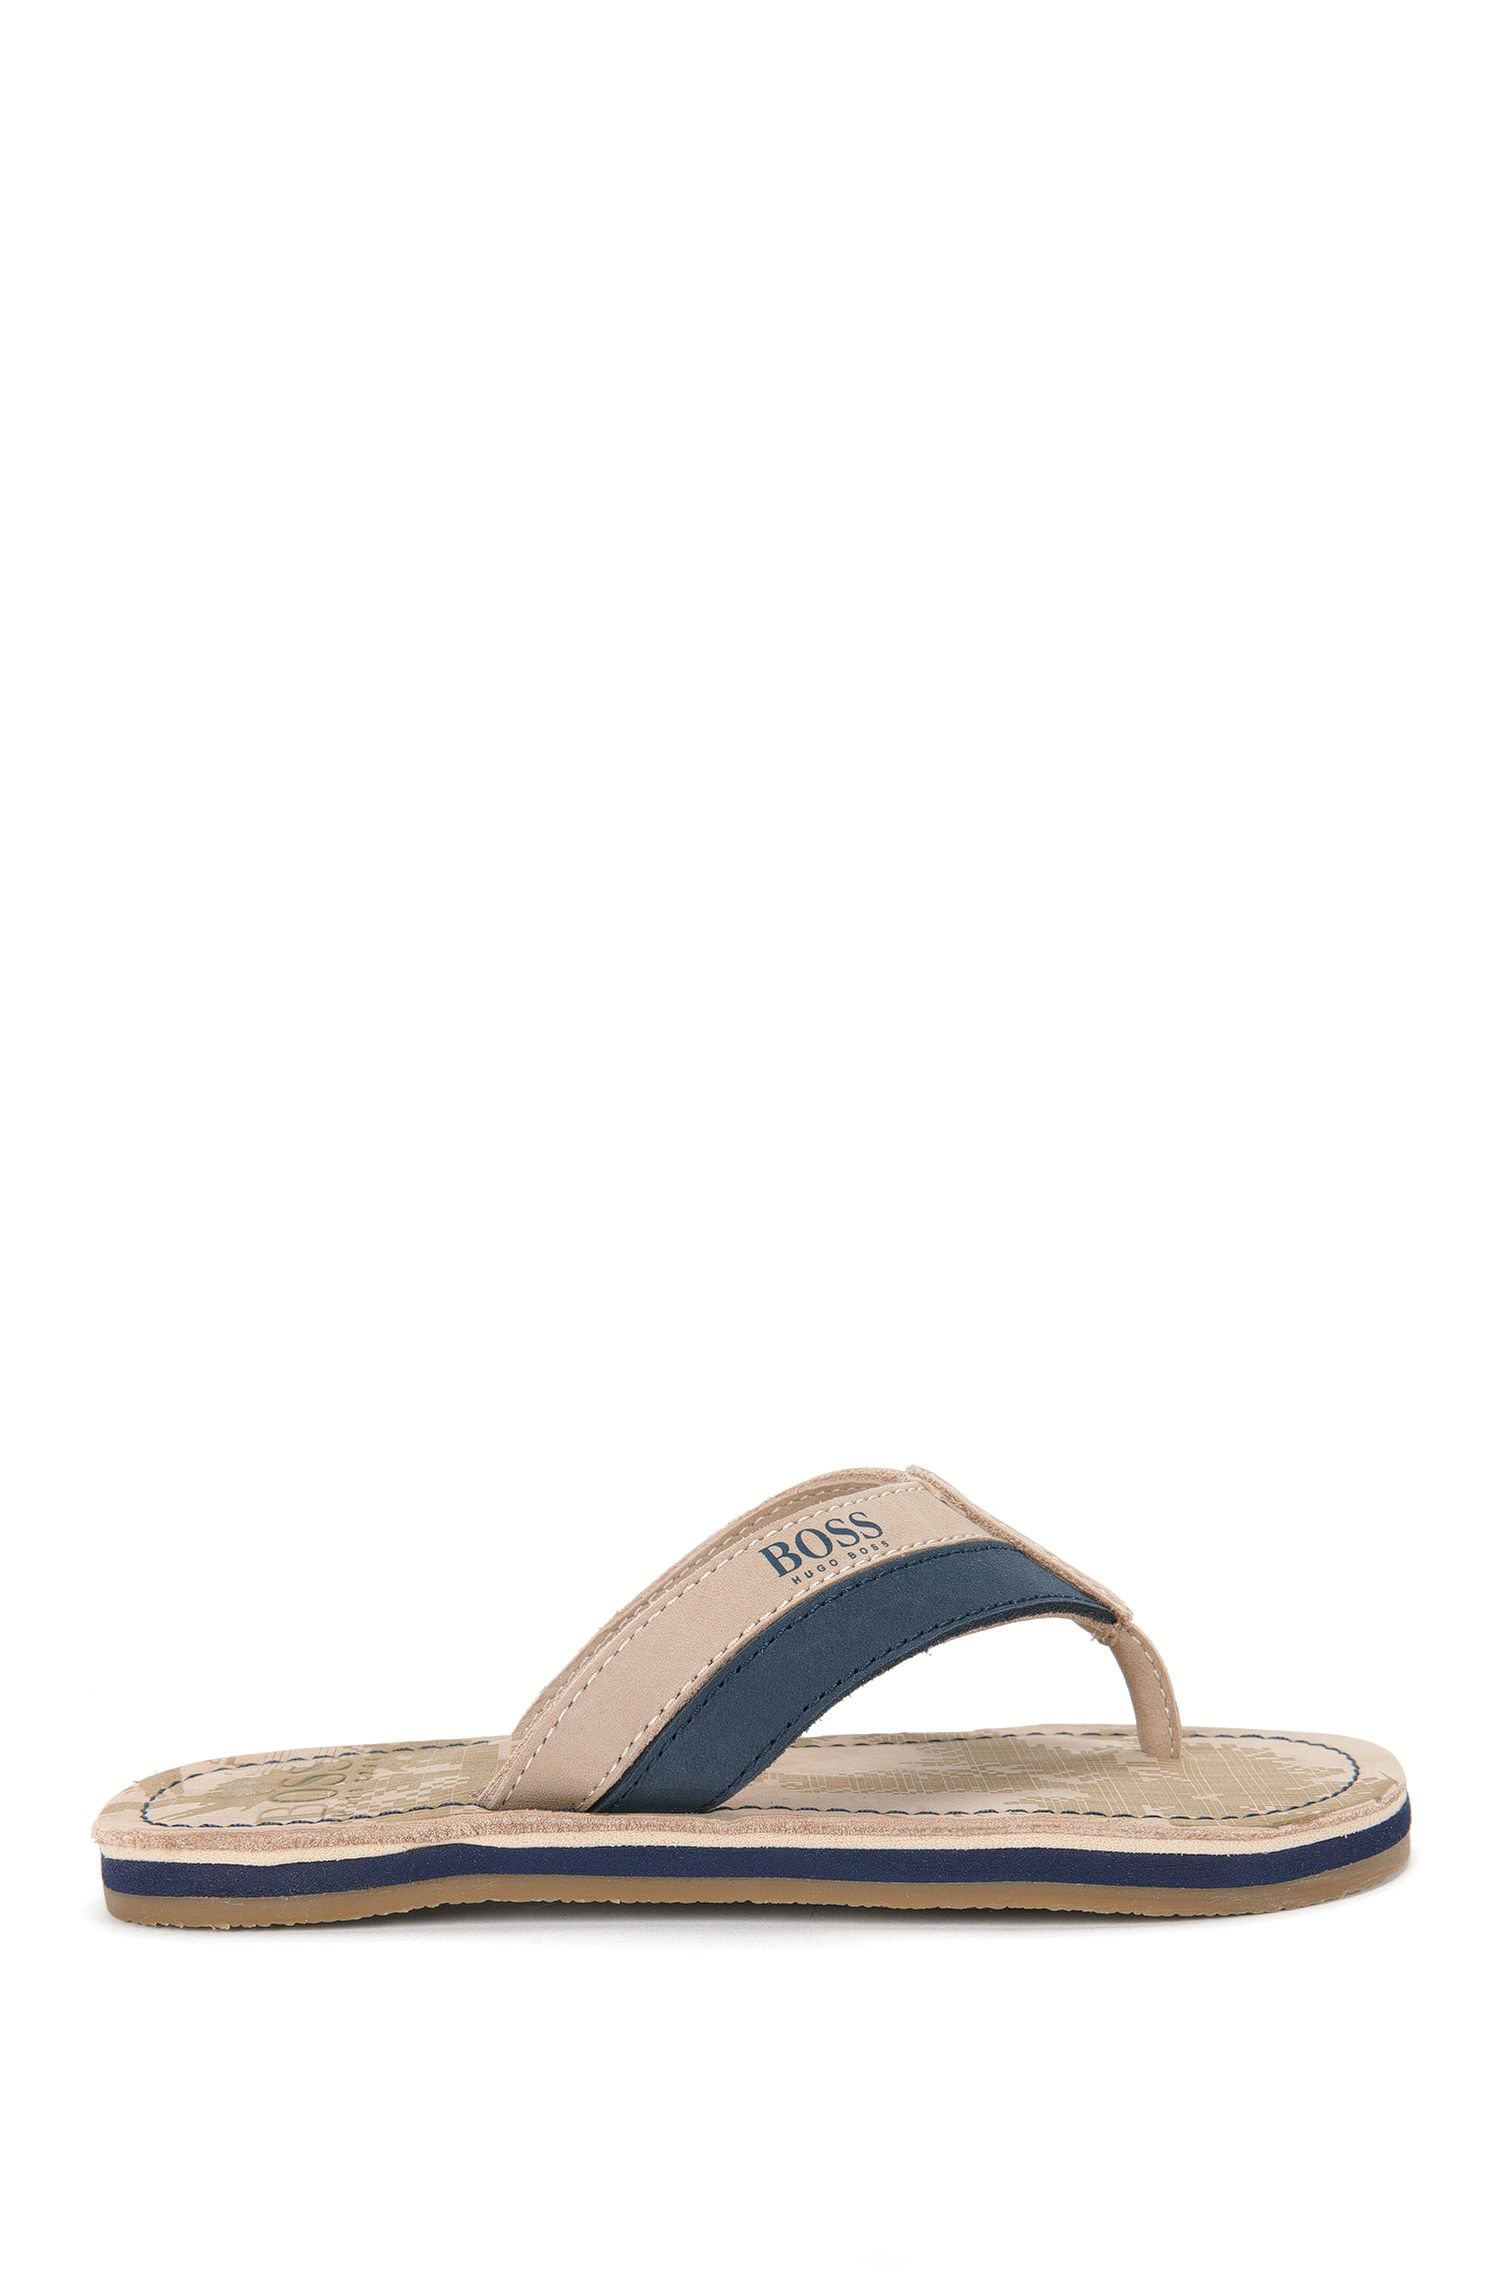 'J29111' | Boys Leather Thong Sandals